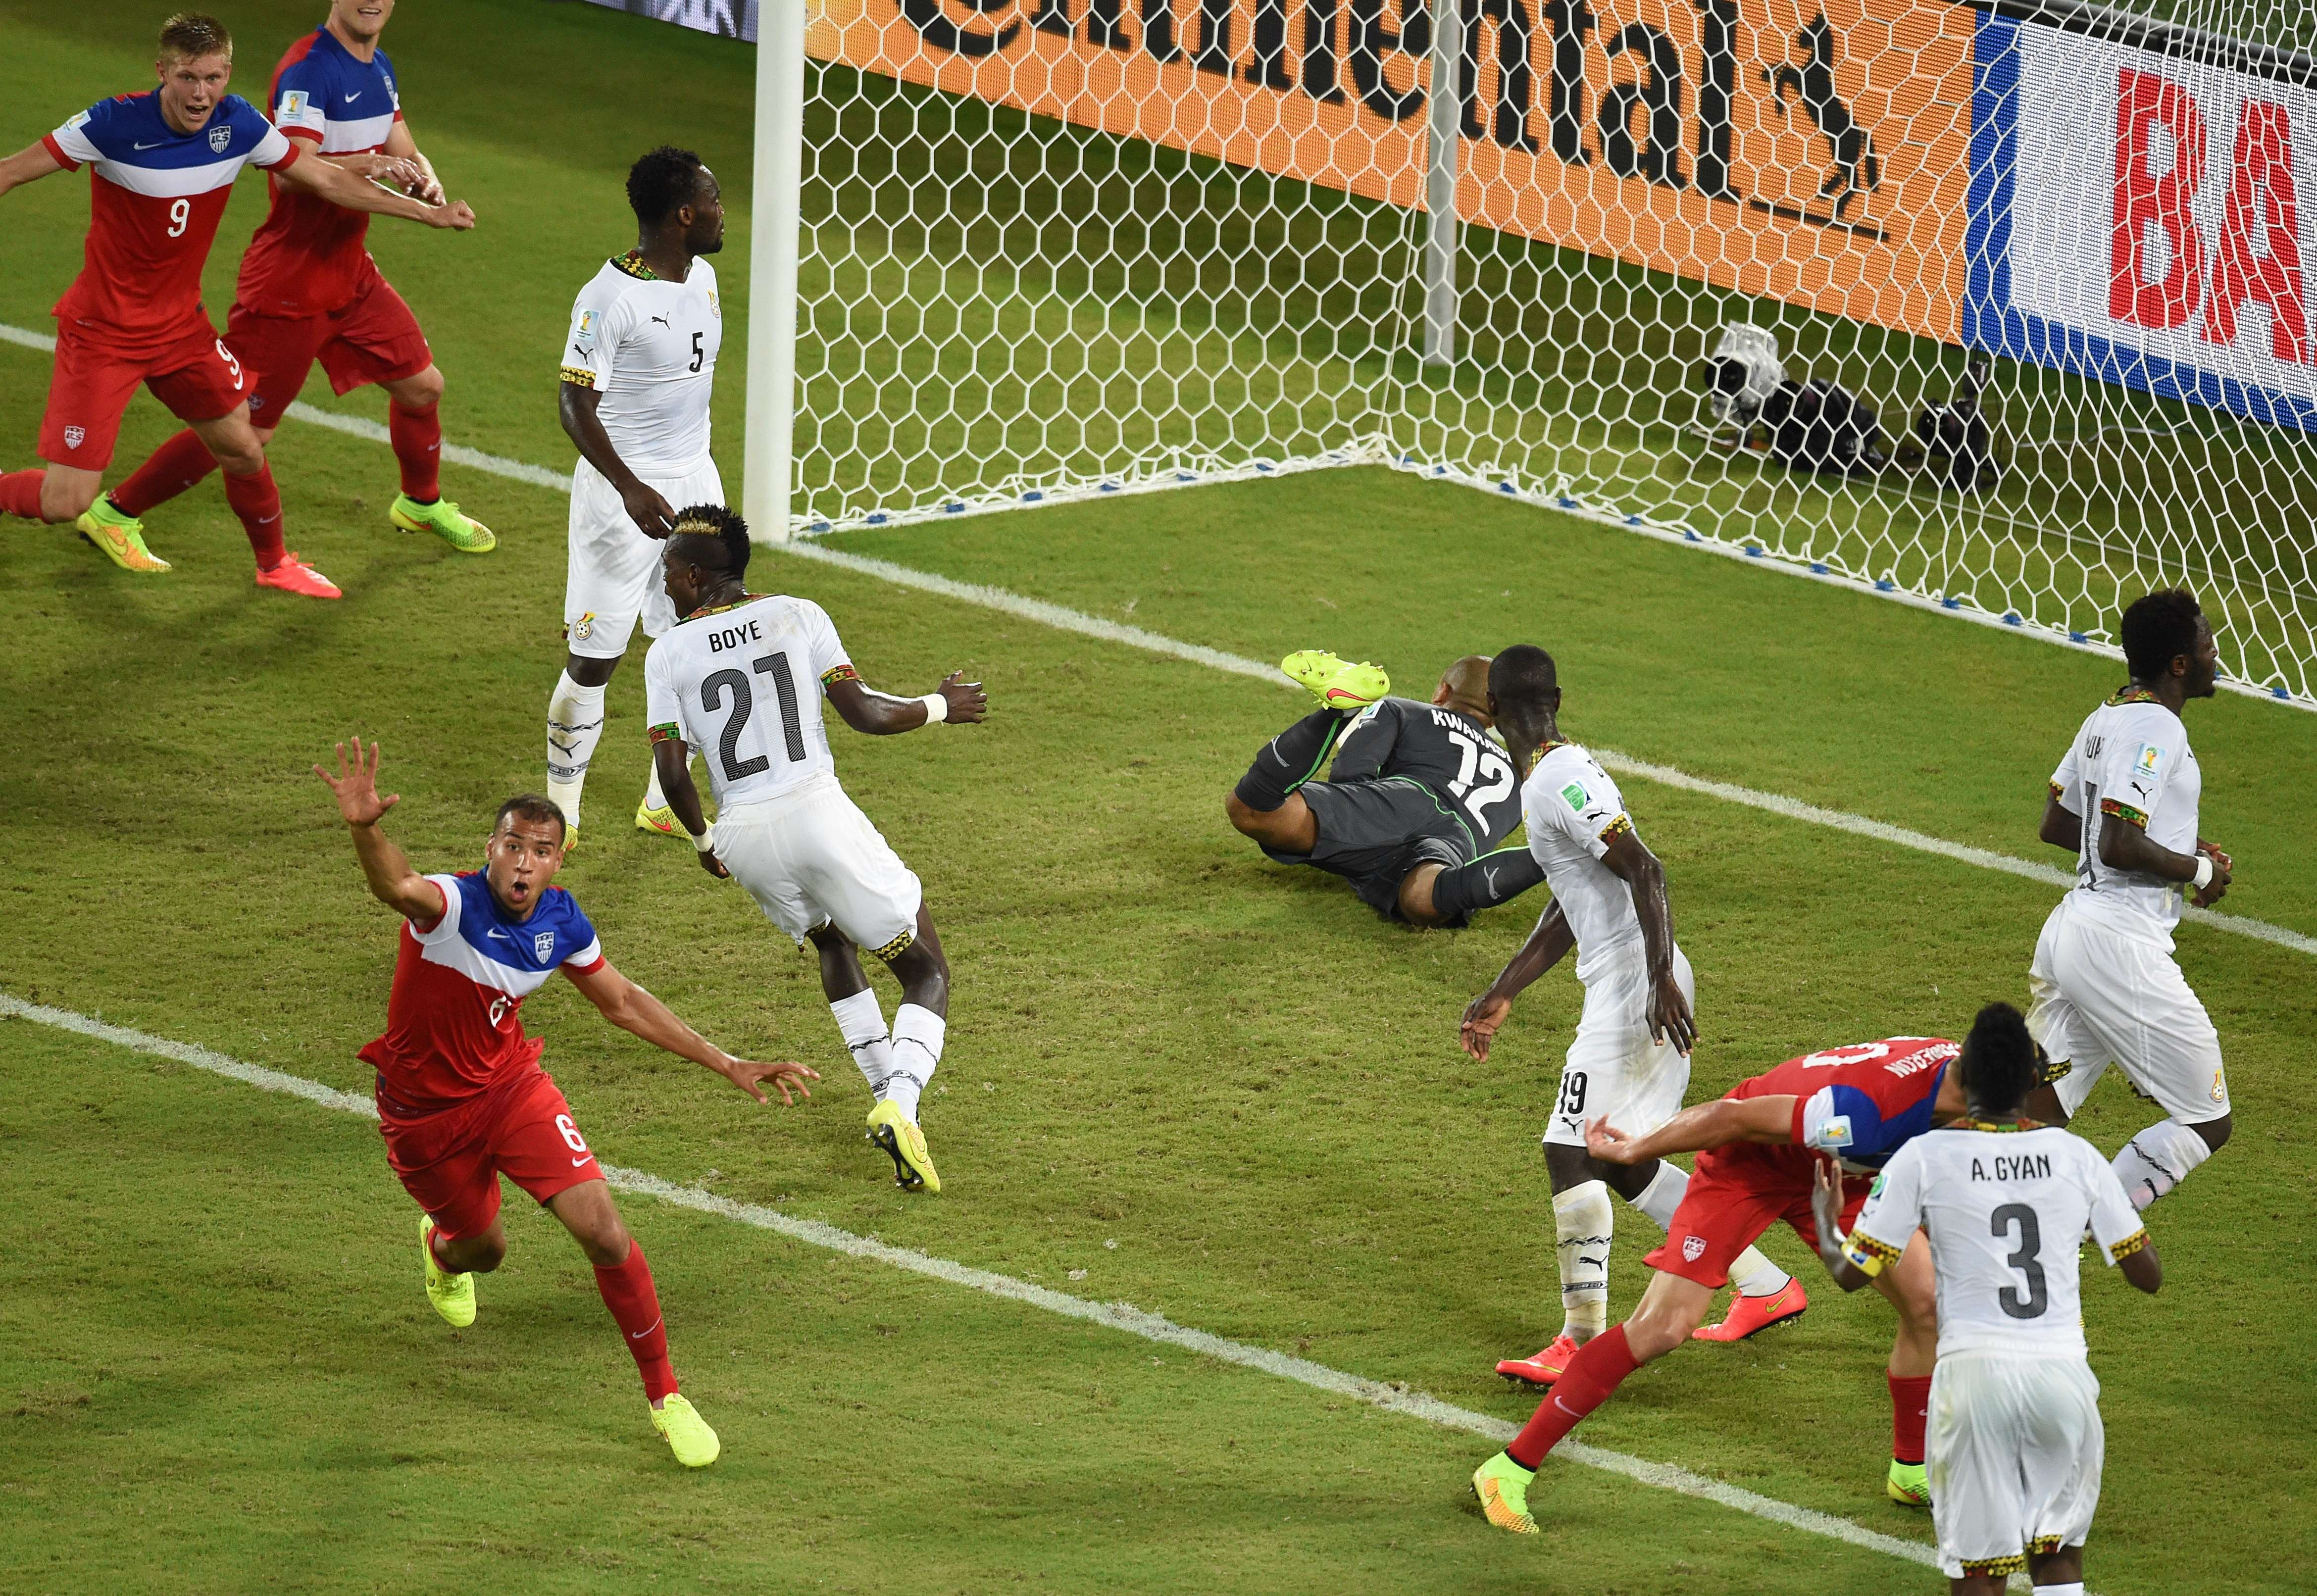 US defender John Brooks celebrates after scoring during a Group G football match between Ghana and US at the Dunas Arena in Natal, Brazil during the 2014 FIFA World Cup on June 16, 2014.